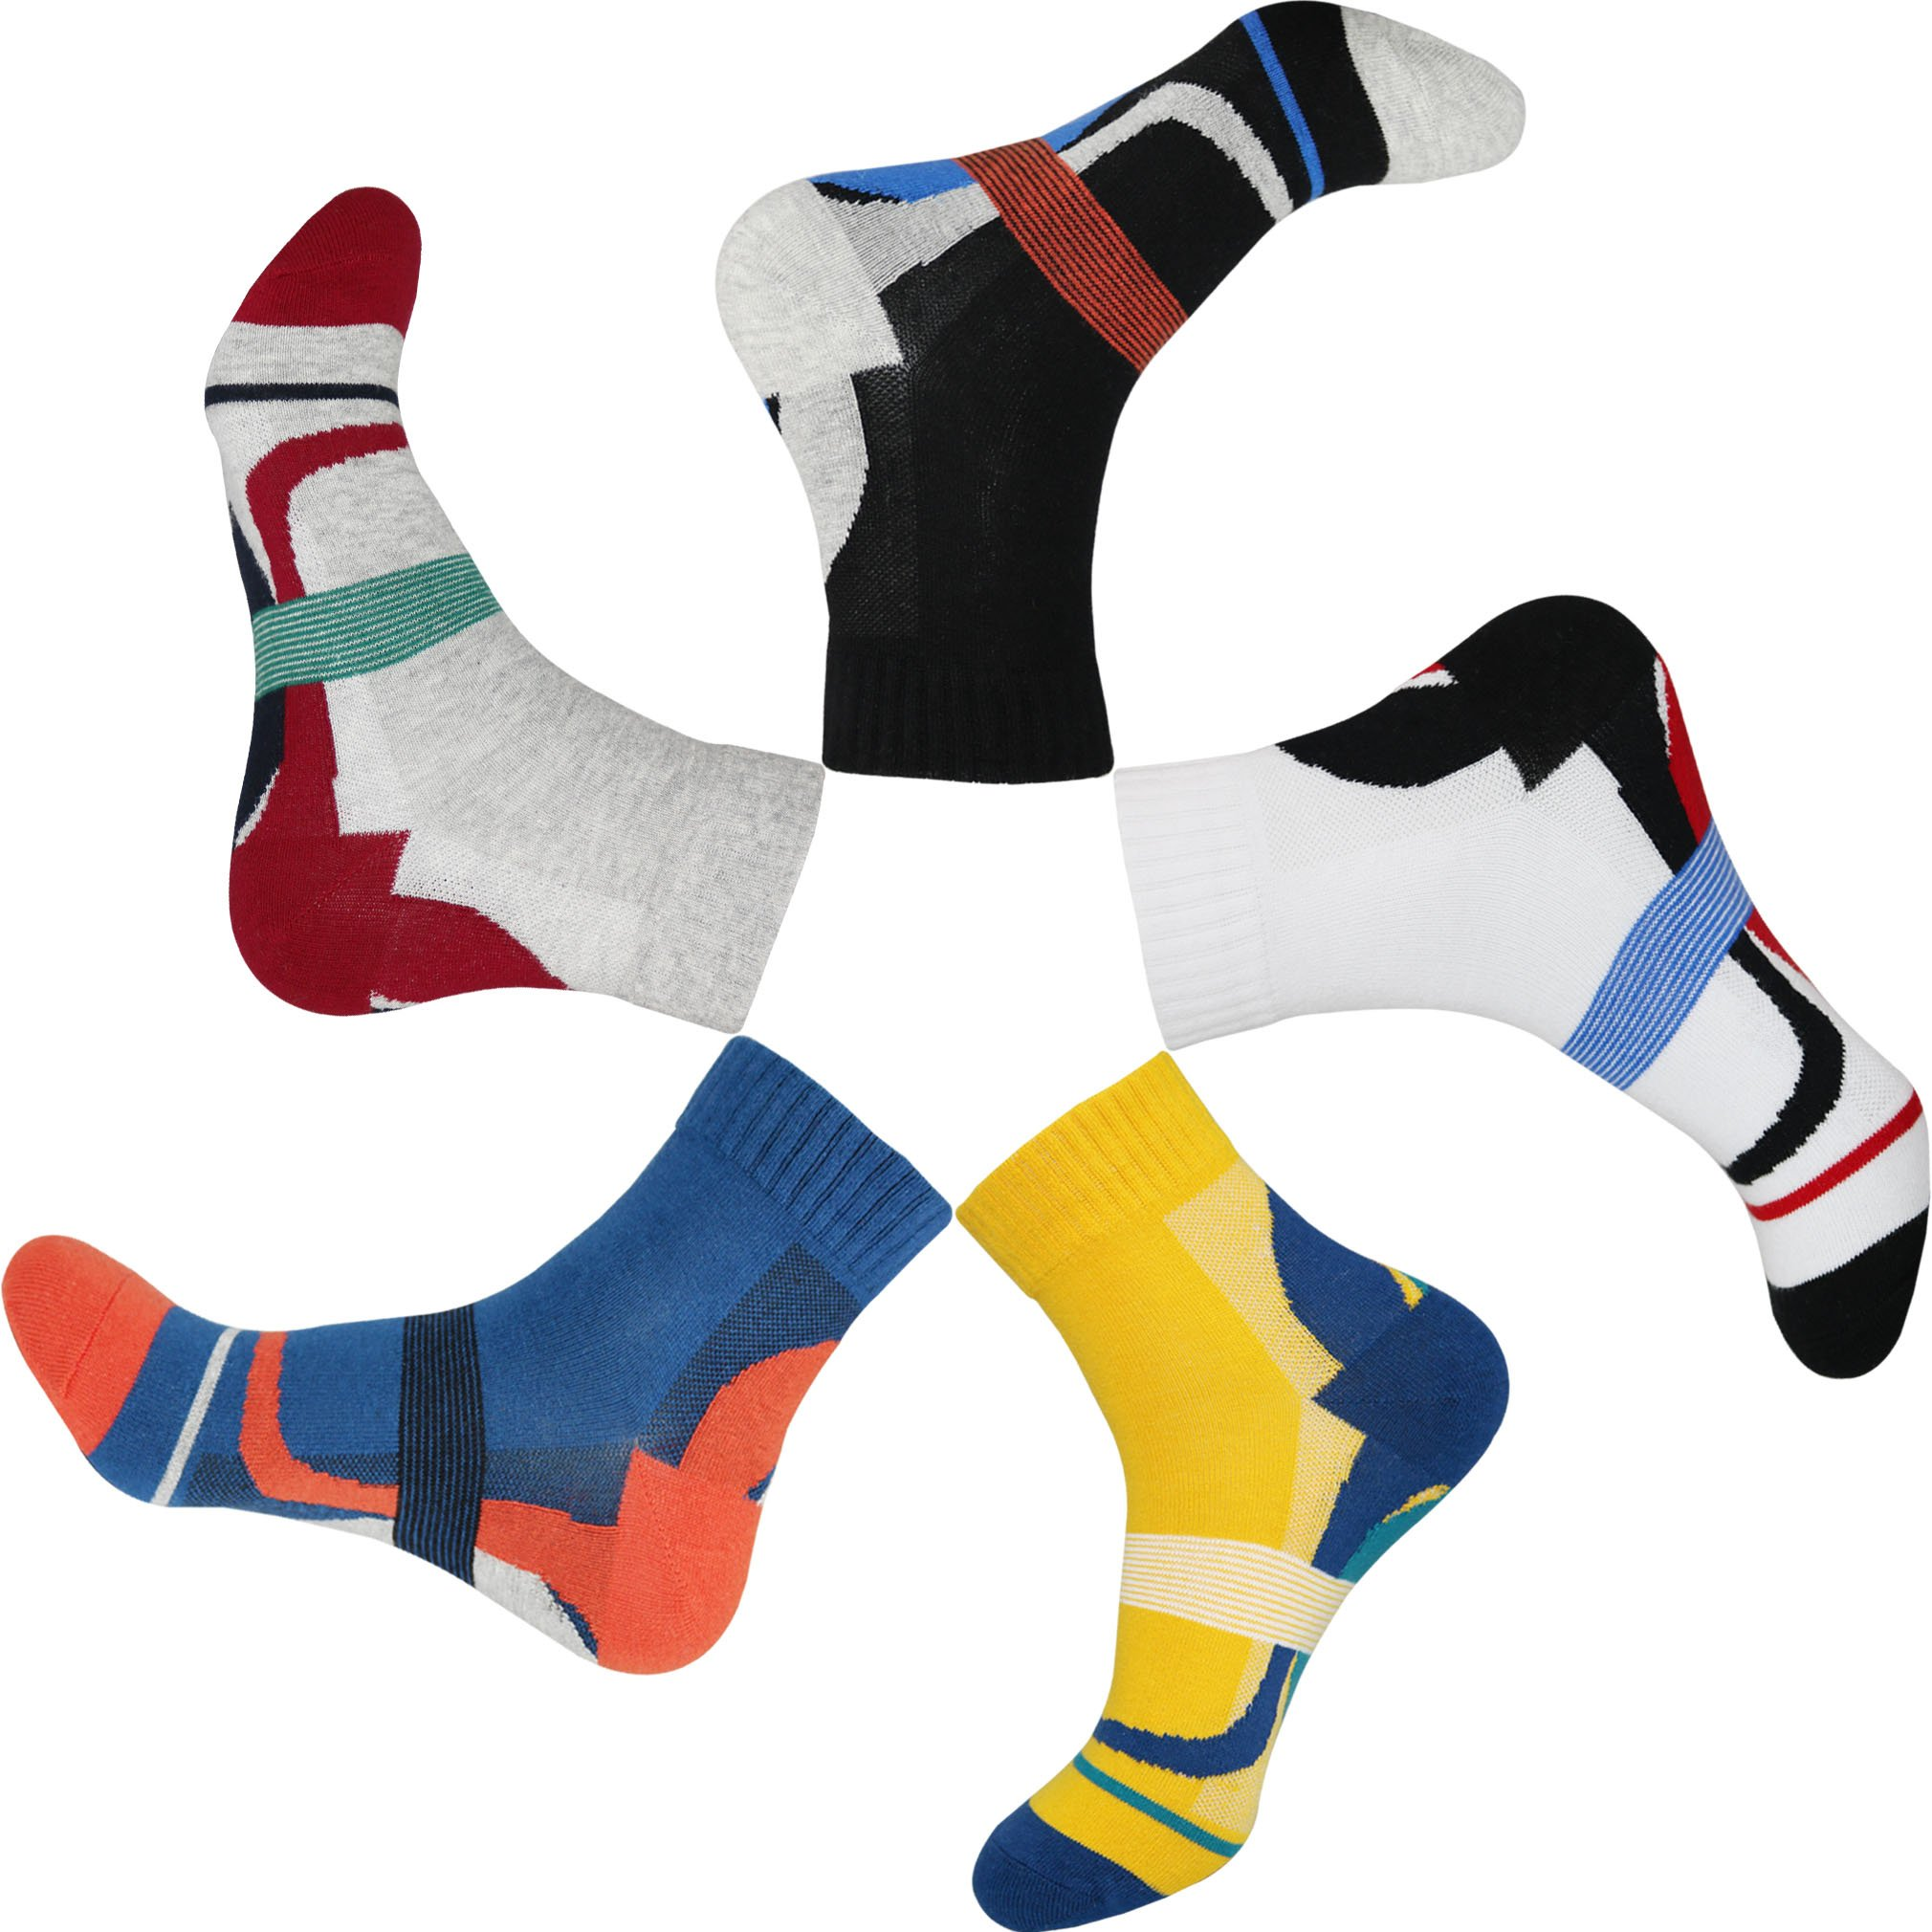 TongXG Men's 5 Pack Cotton Quarter Sports Athletic Colorful Pattern Socks (6-13, black/white/yellow/blue/grey)